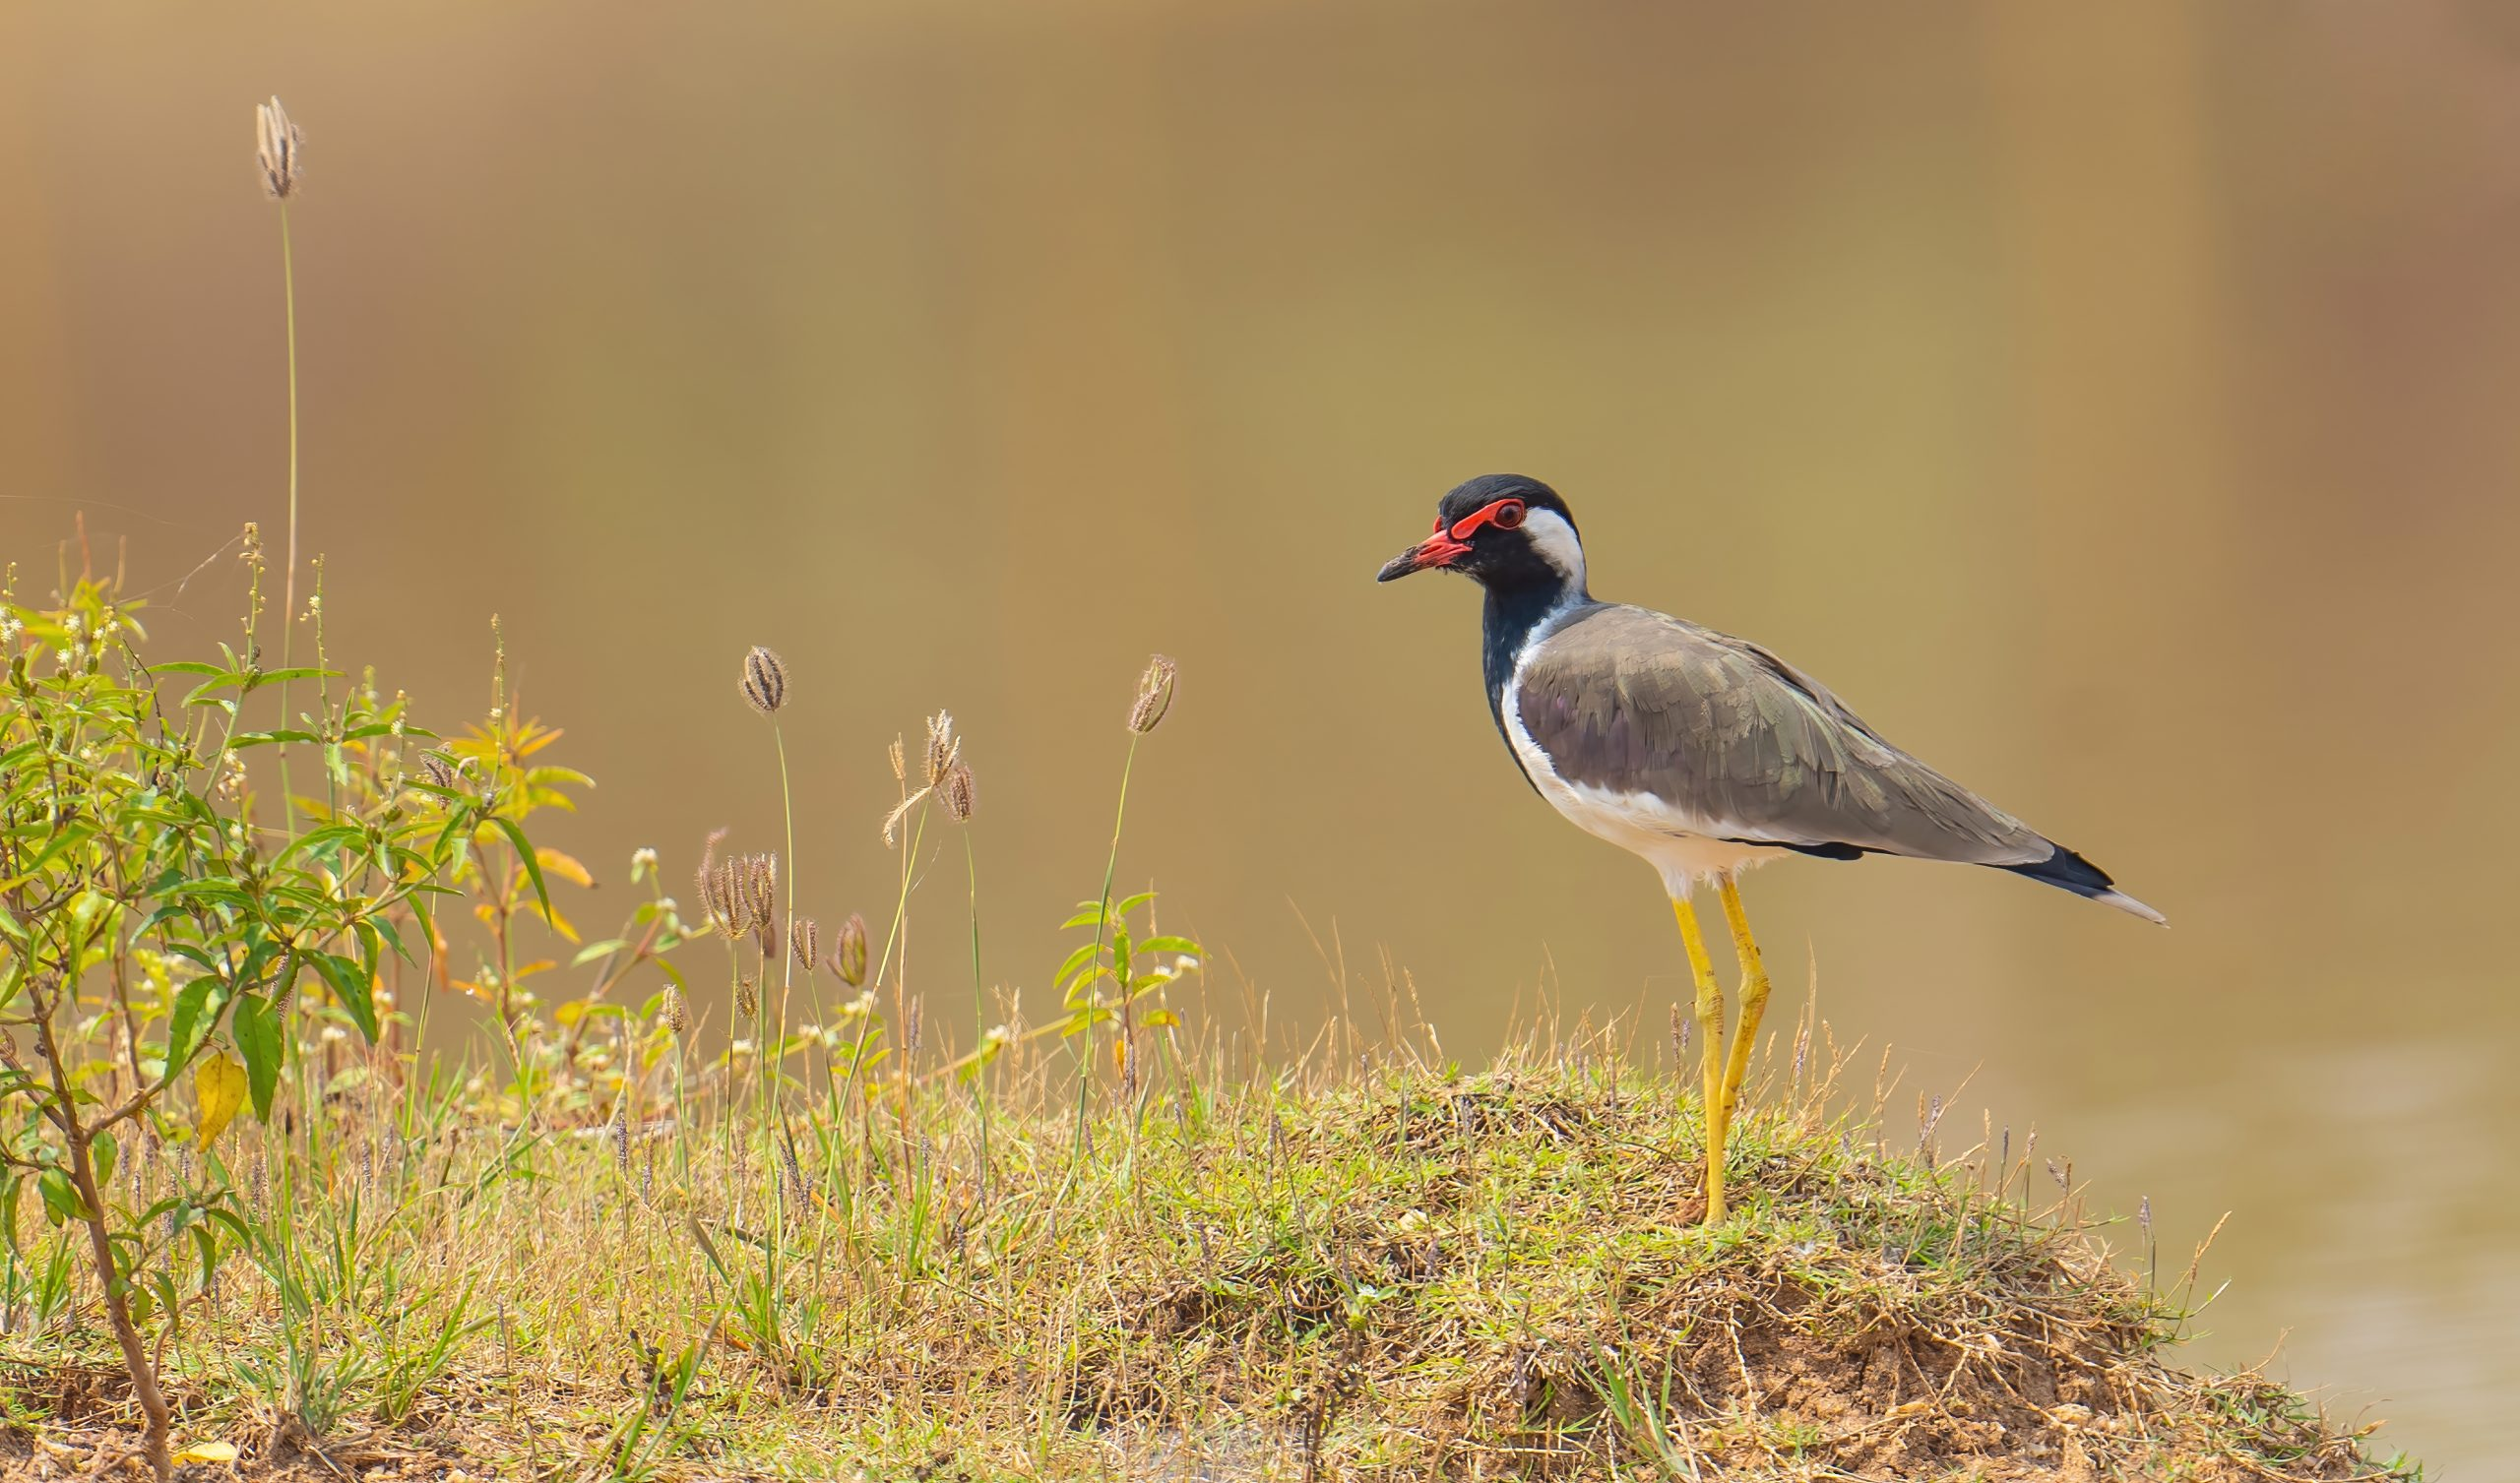 Lapwing sitting on grassland